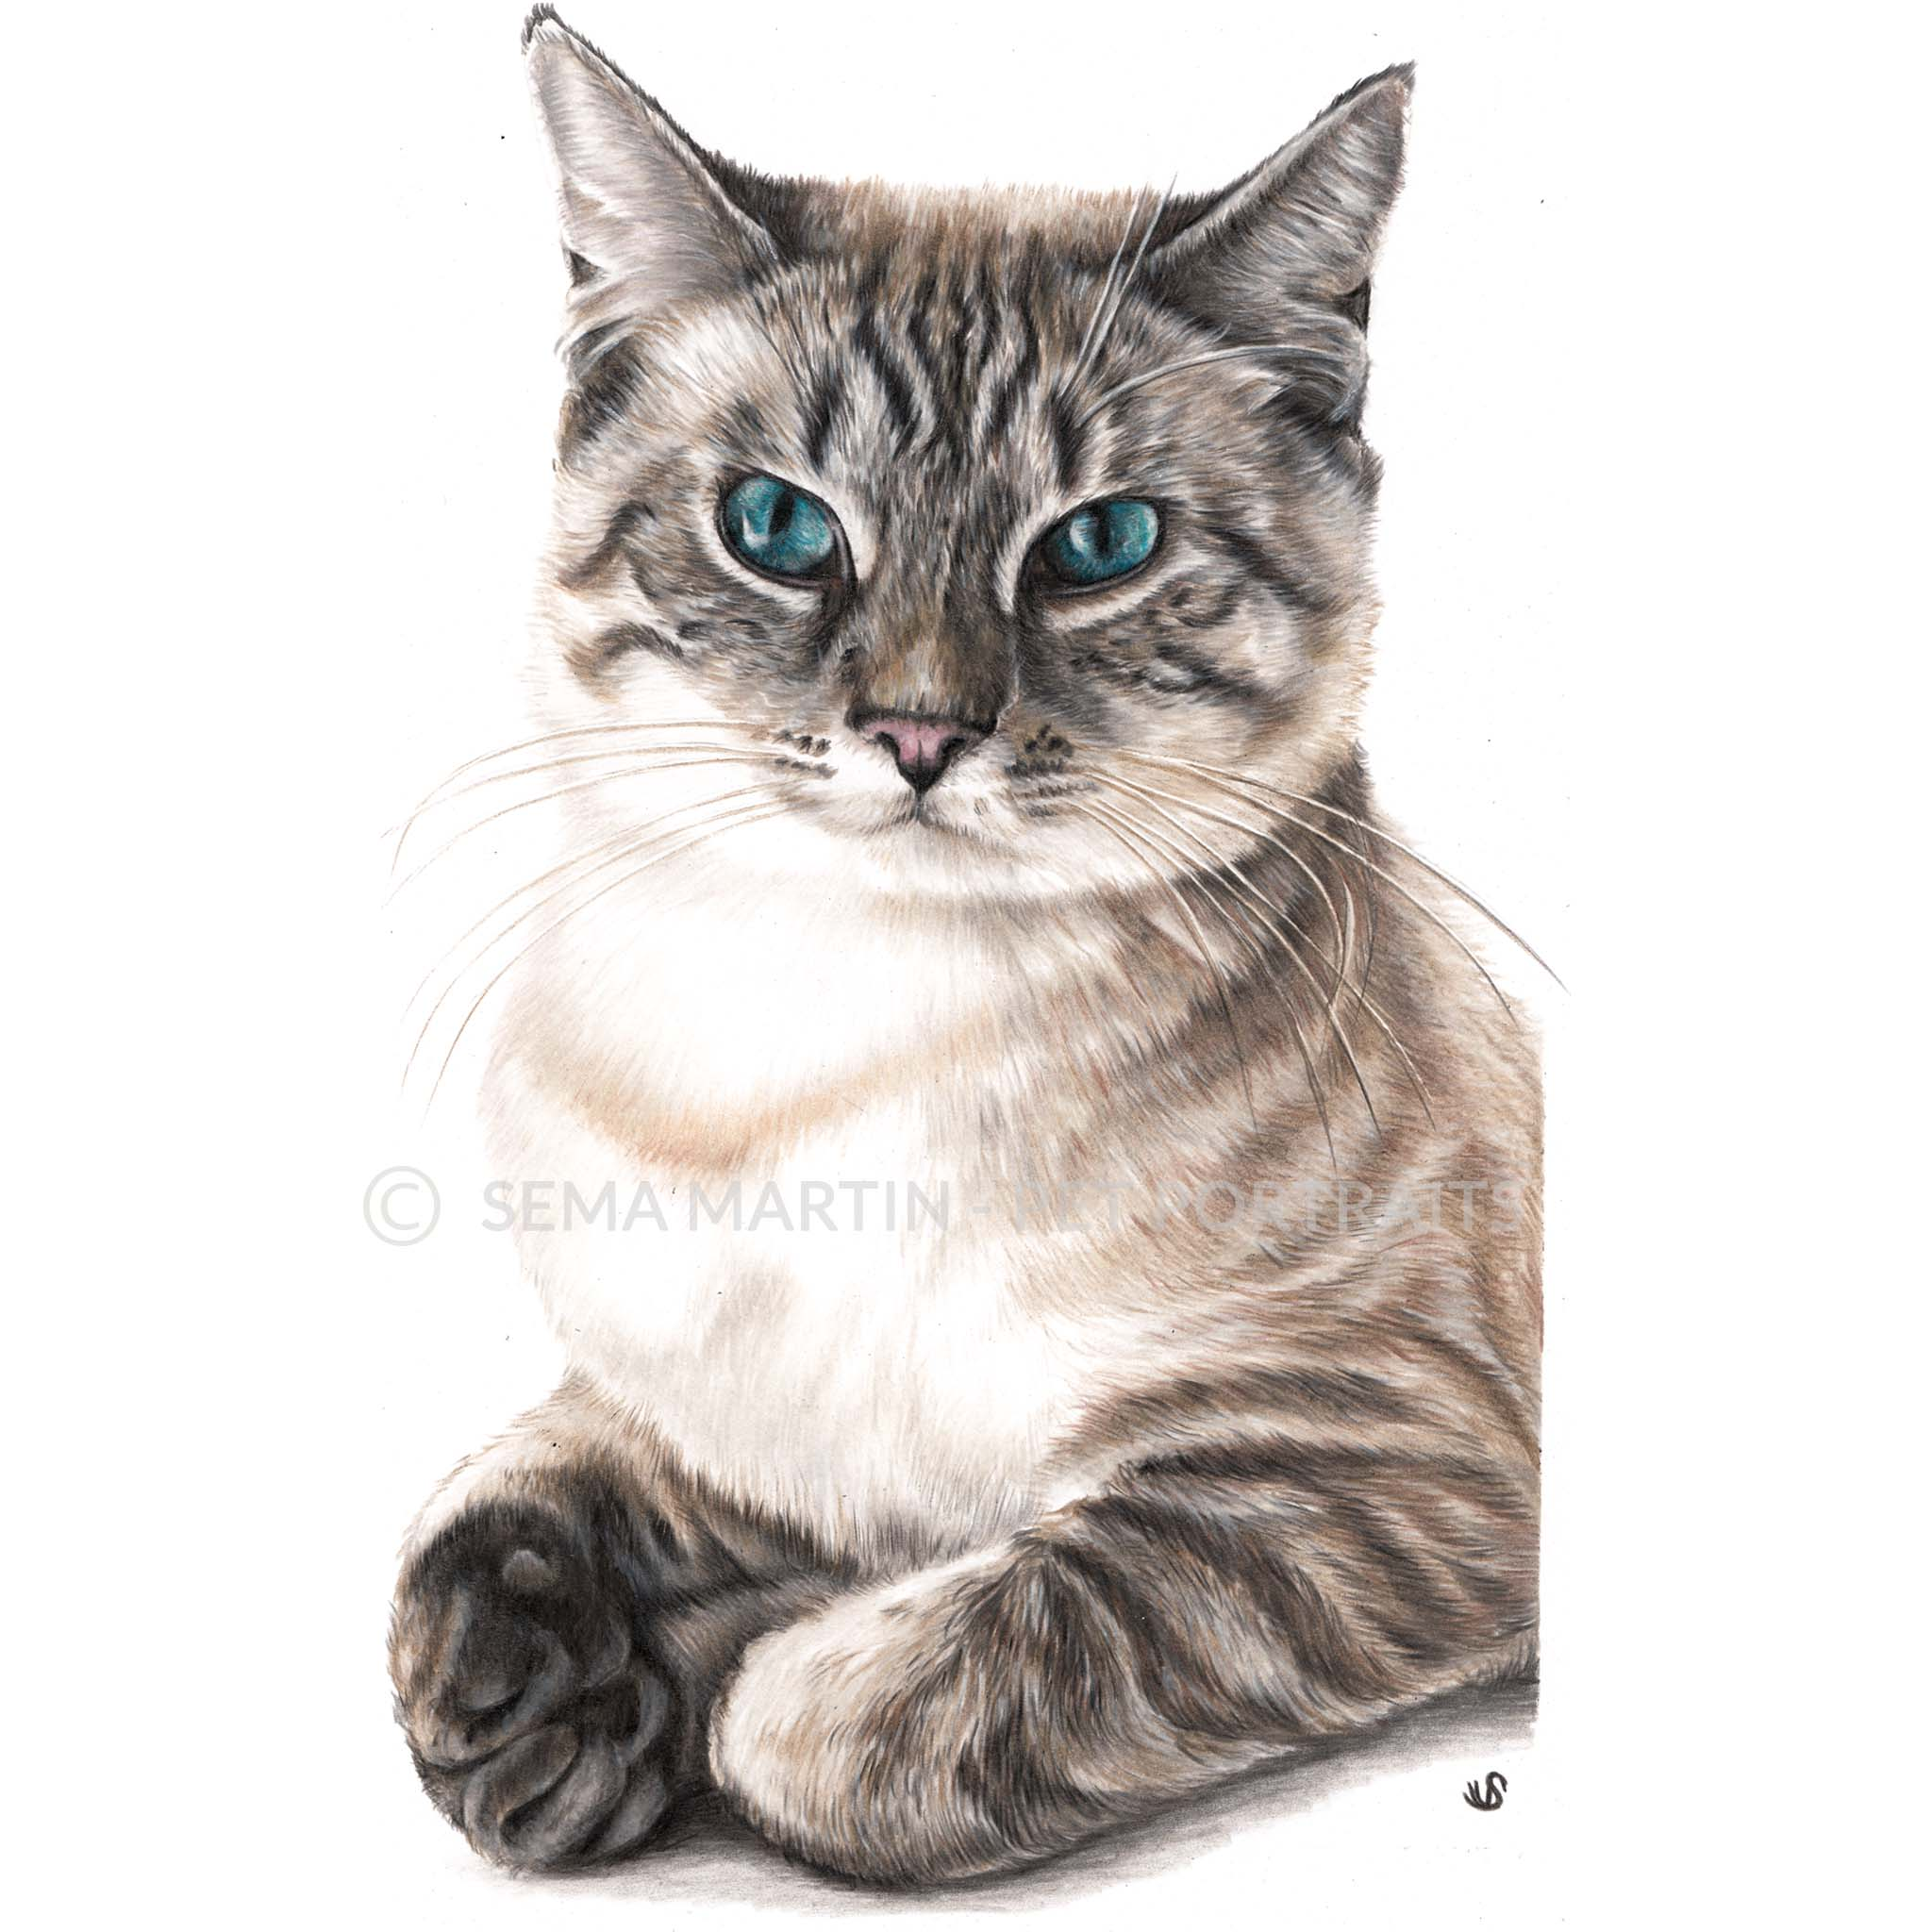 'Tiger' - USA, 8.3 x 11.7 inches, 2019, Color Pencil Portrait of a Lynx Point Siamese Cat